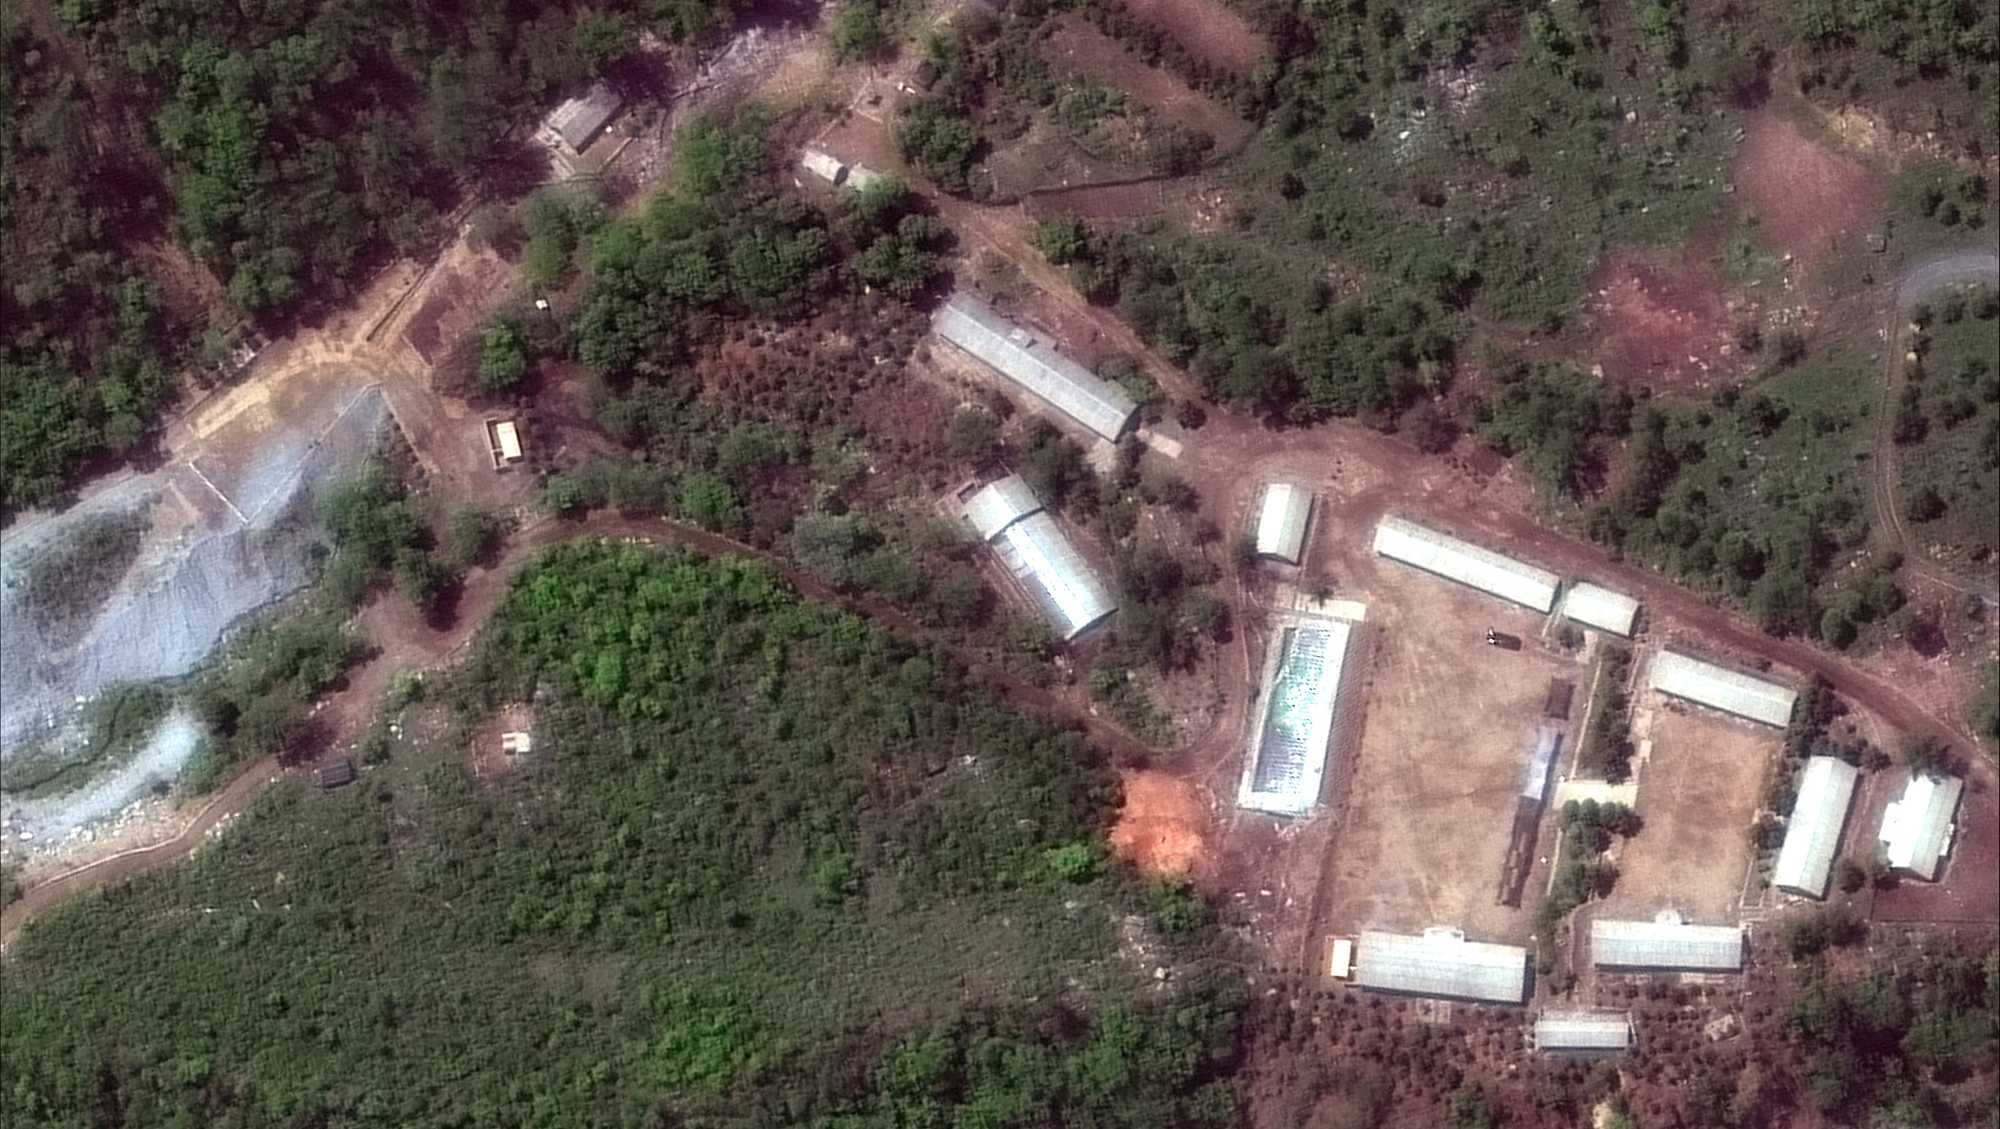 This Wednesday, May 23, 2018 satellite file image provided by DigitalGlobe, shows the Punggye-ri test site in North Korea. North Korea has carried out what it says is the demolition of its nuclear test site in the presence of foreign journalists. The demolition happened Thursday at the site deep in the mountains of the North's sparsely populated northeast. The planned closing was previously announced by leader Kim Jong Un ahead of his planned summit with U.S. President Donald Trump next month.